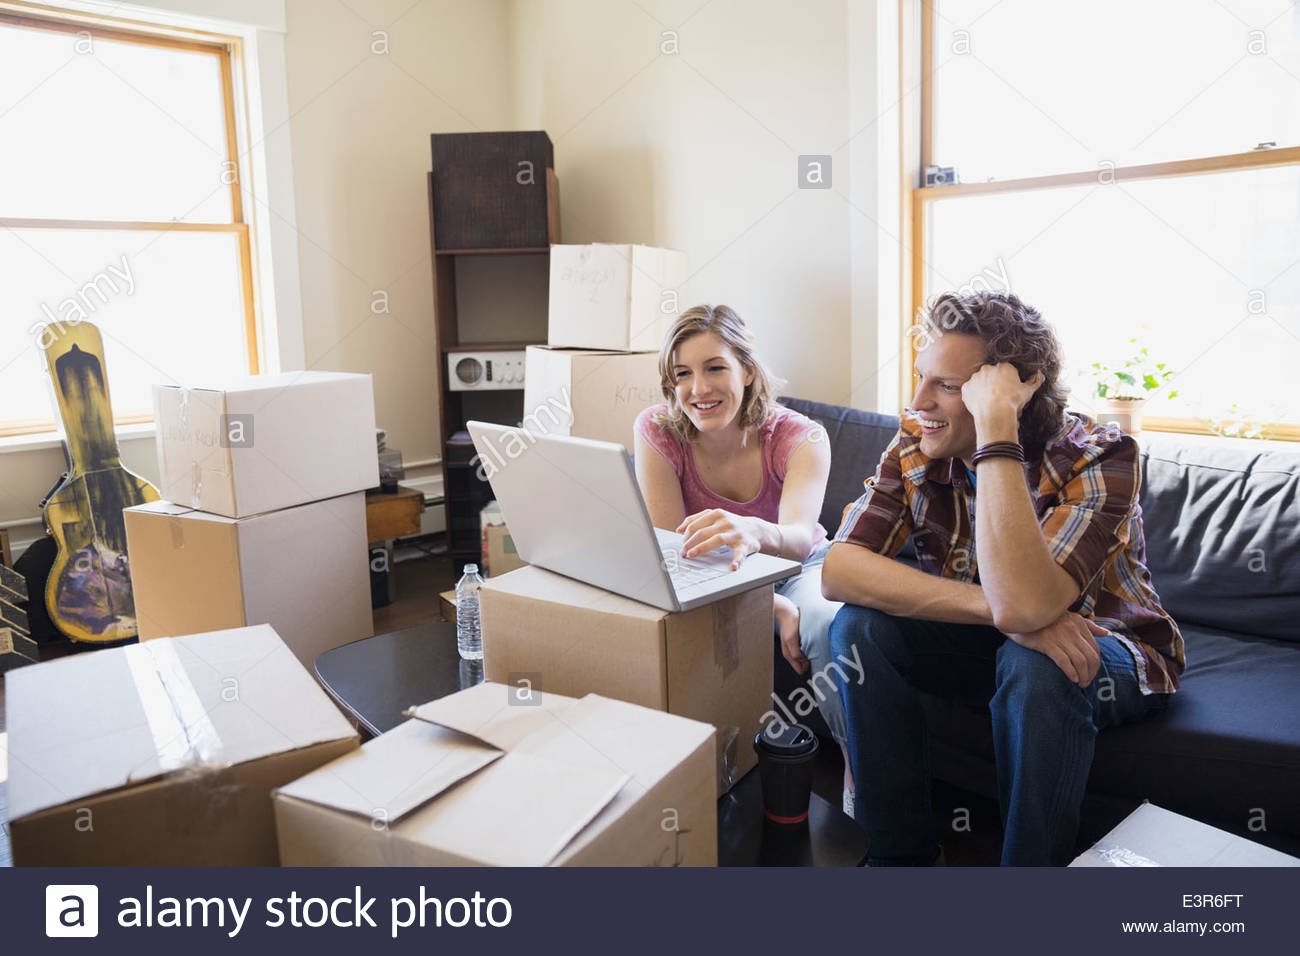 Couple with laptop on sofa surrounded by boxes - Stock Image